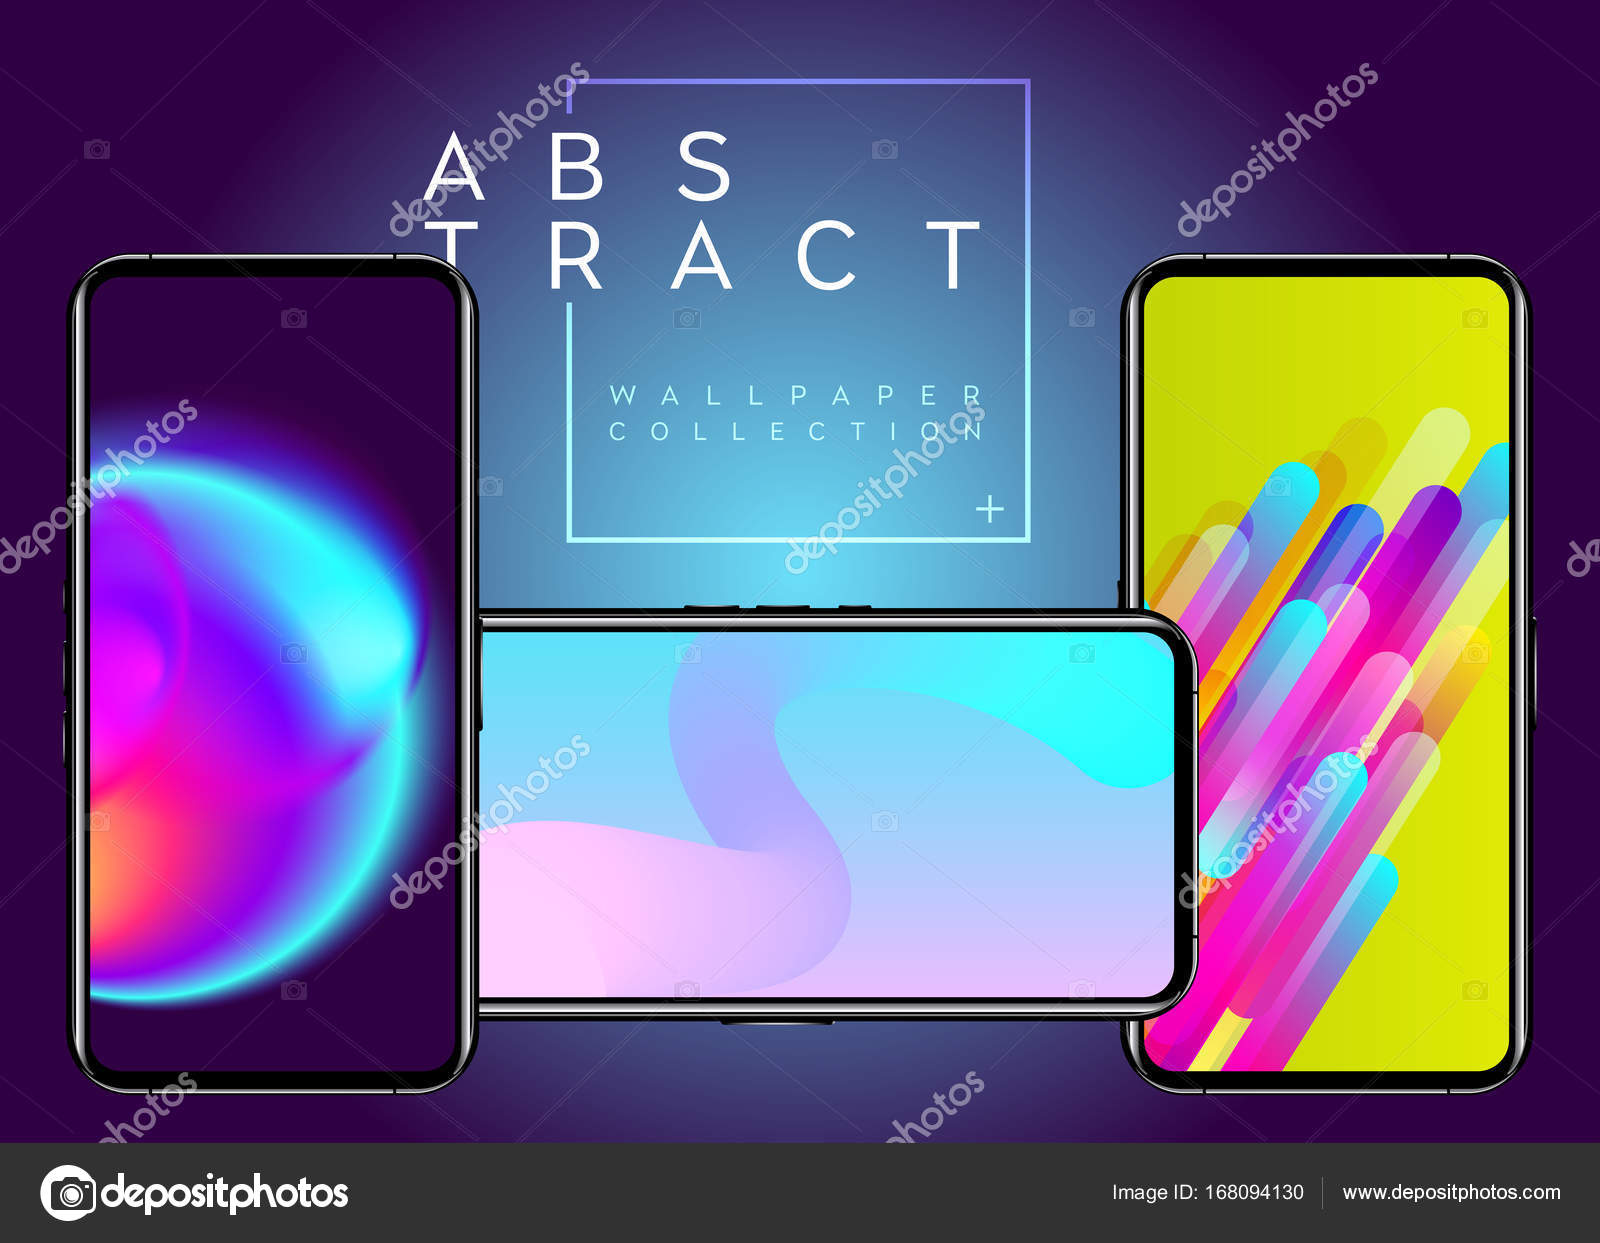 Phone Abstract Futuristic Wallpaper Collection Creative